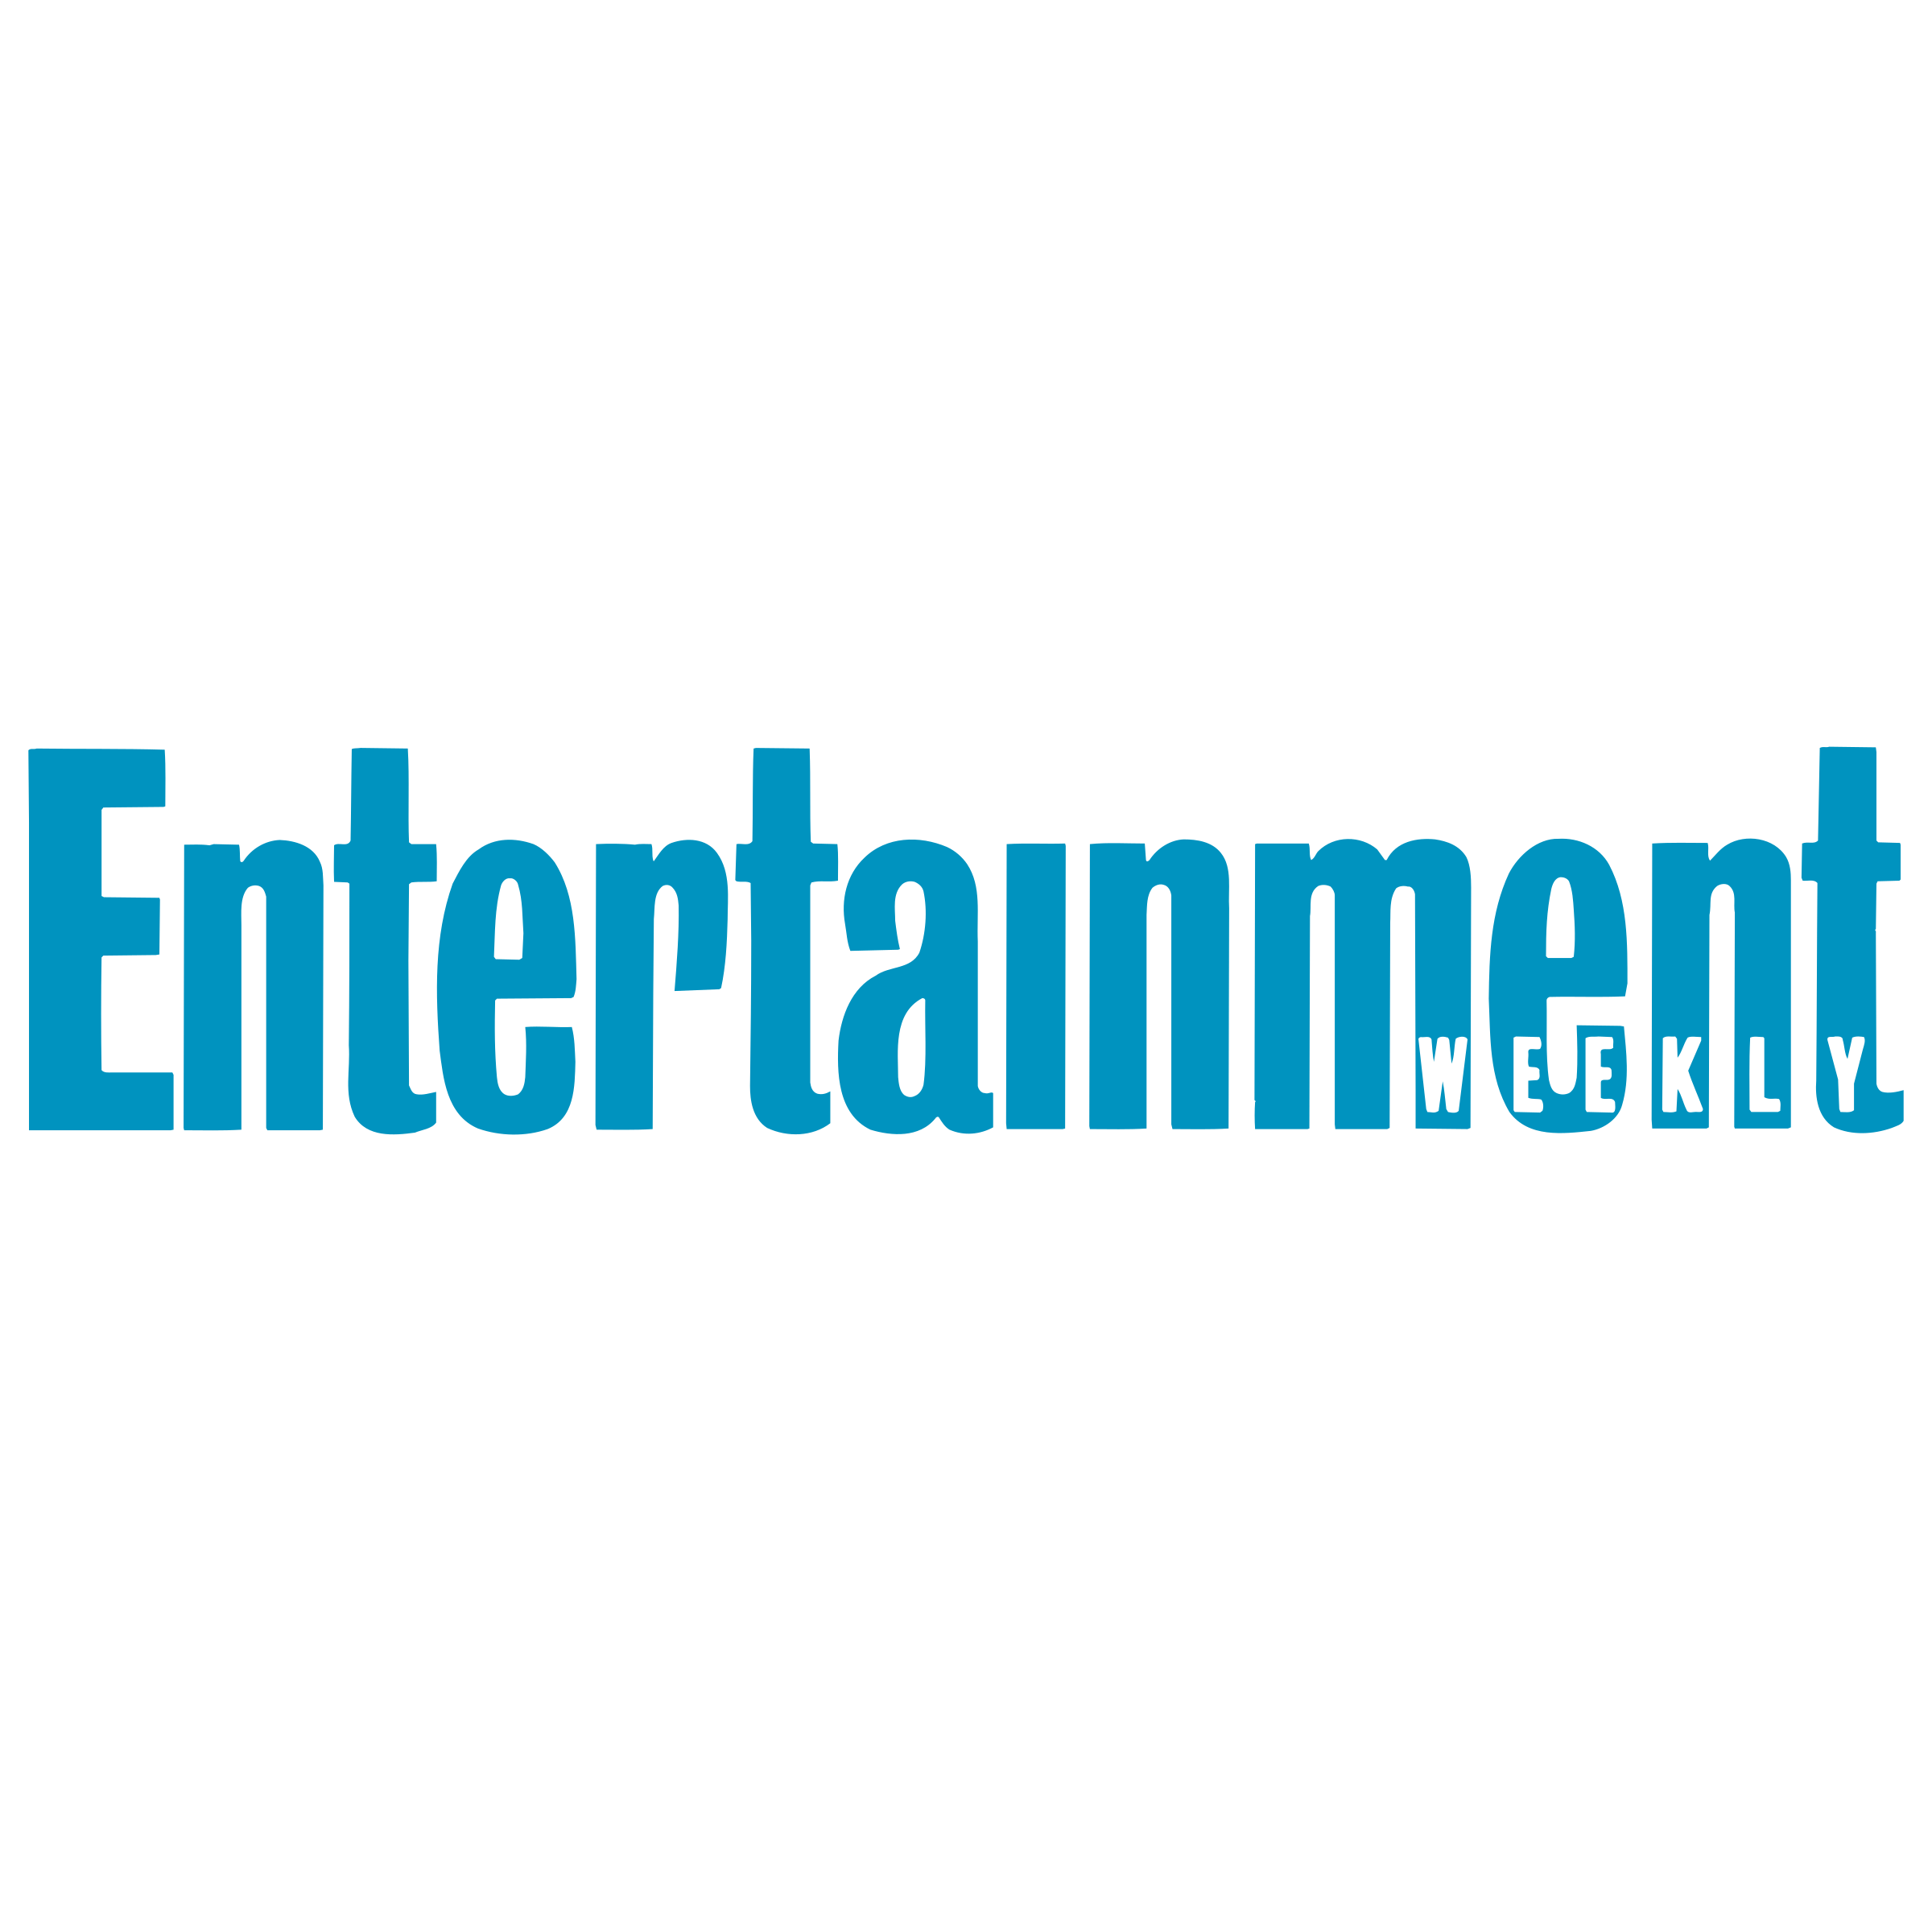 entertainment-weekly-logo-png-transparent.png